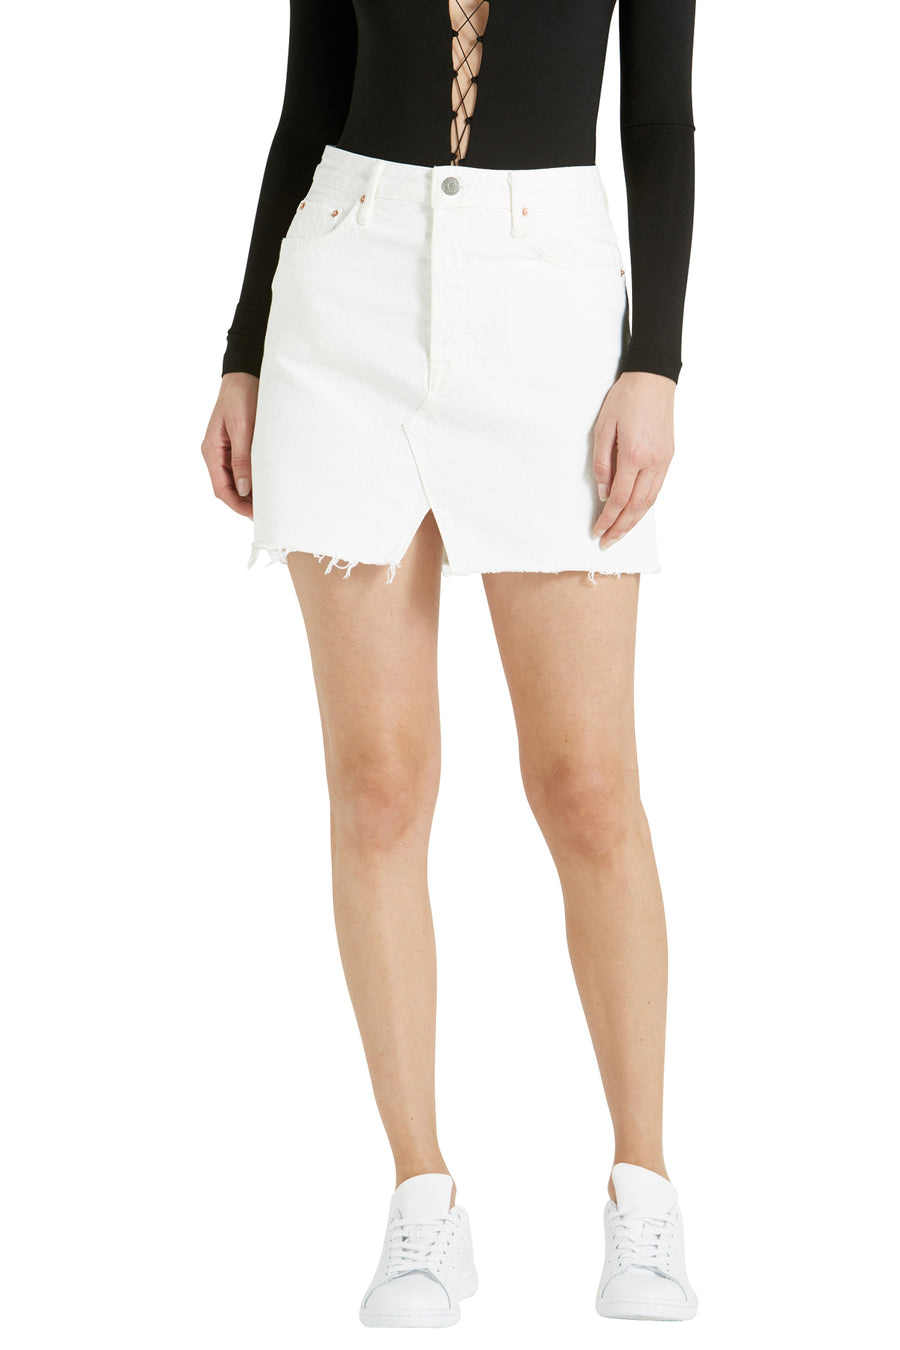 MILLA HIGH RISE A-FRAME SKIRT